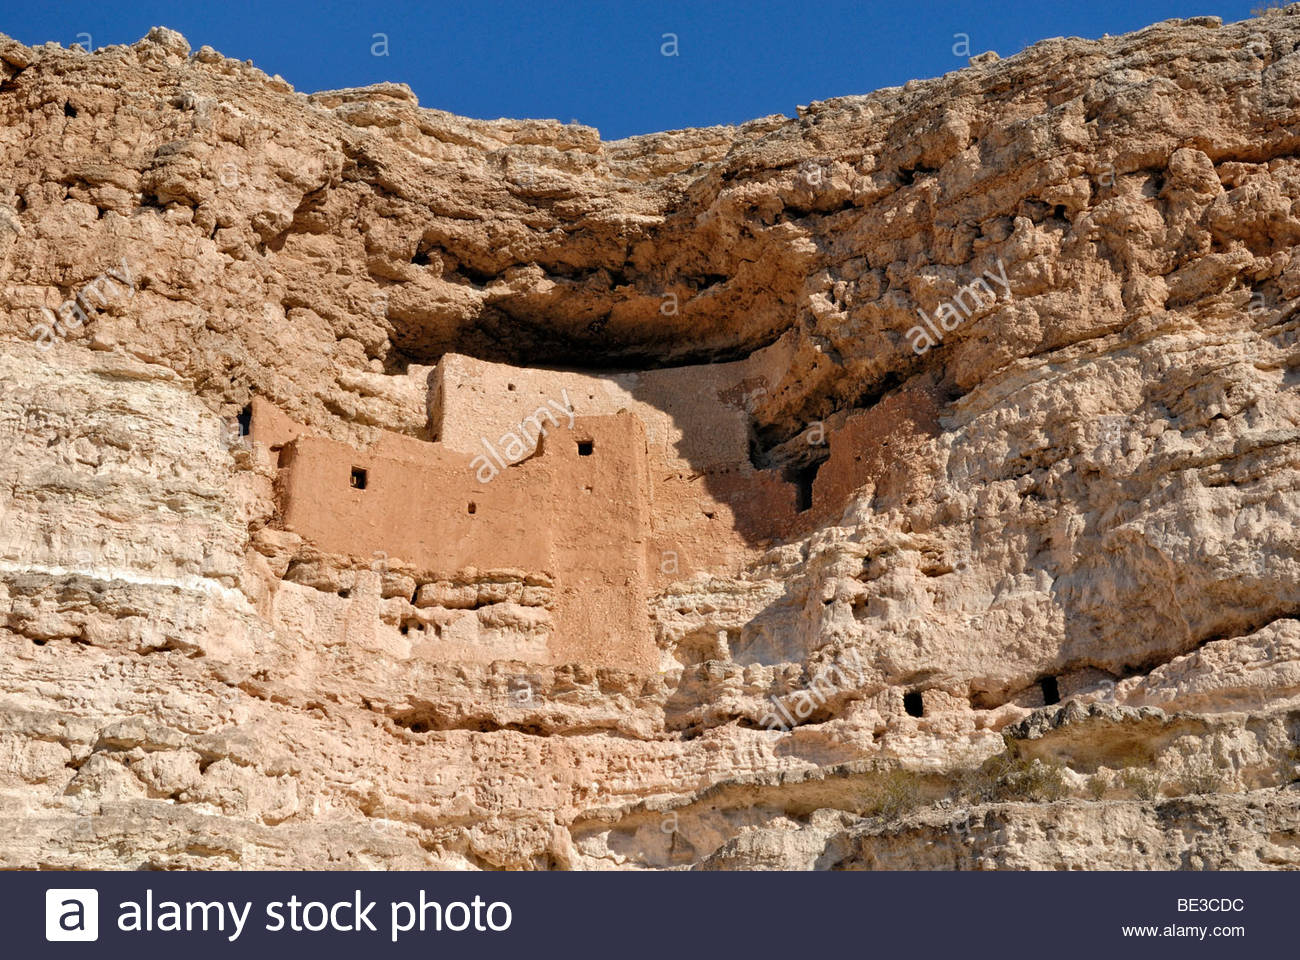 Utah Field House of Natural History State Park Museum Vernal, Montezuma Castle, Cliff castle of the Sinagua Native Americans ...